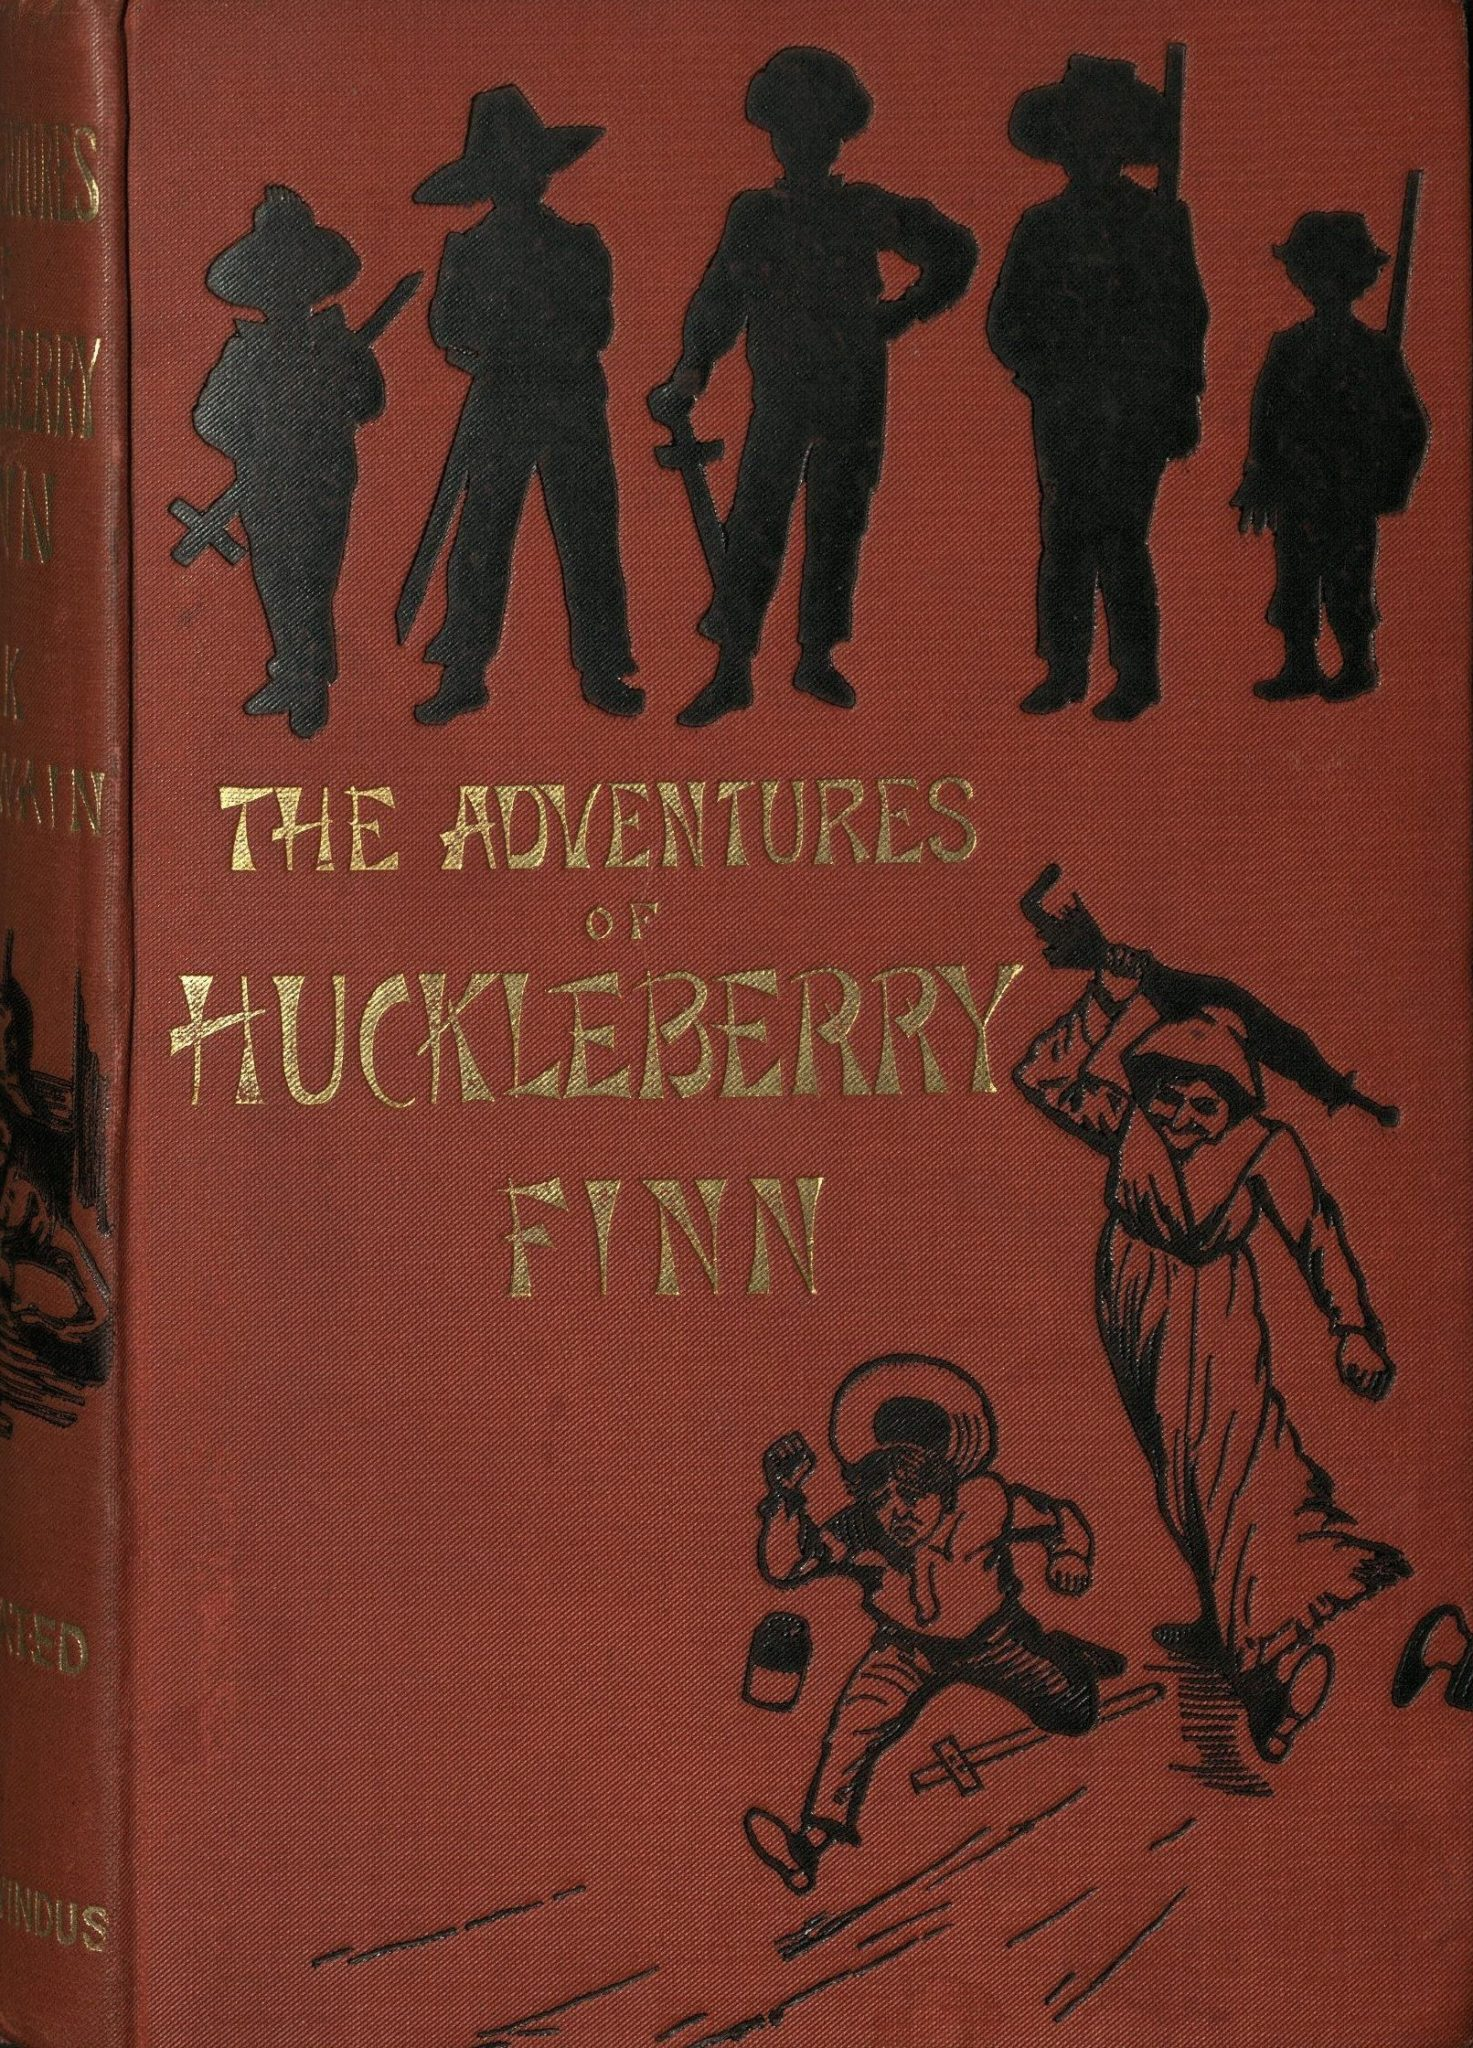 book of the week the adventures of huckleberry finn newsletter adventures of huckleberry finn